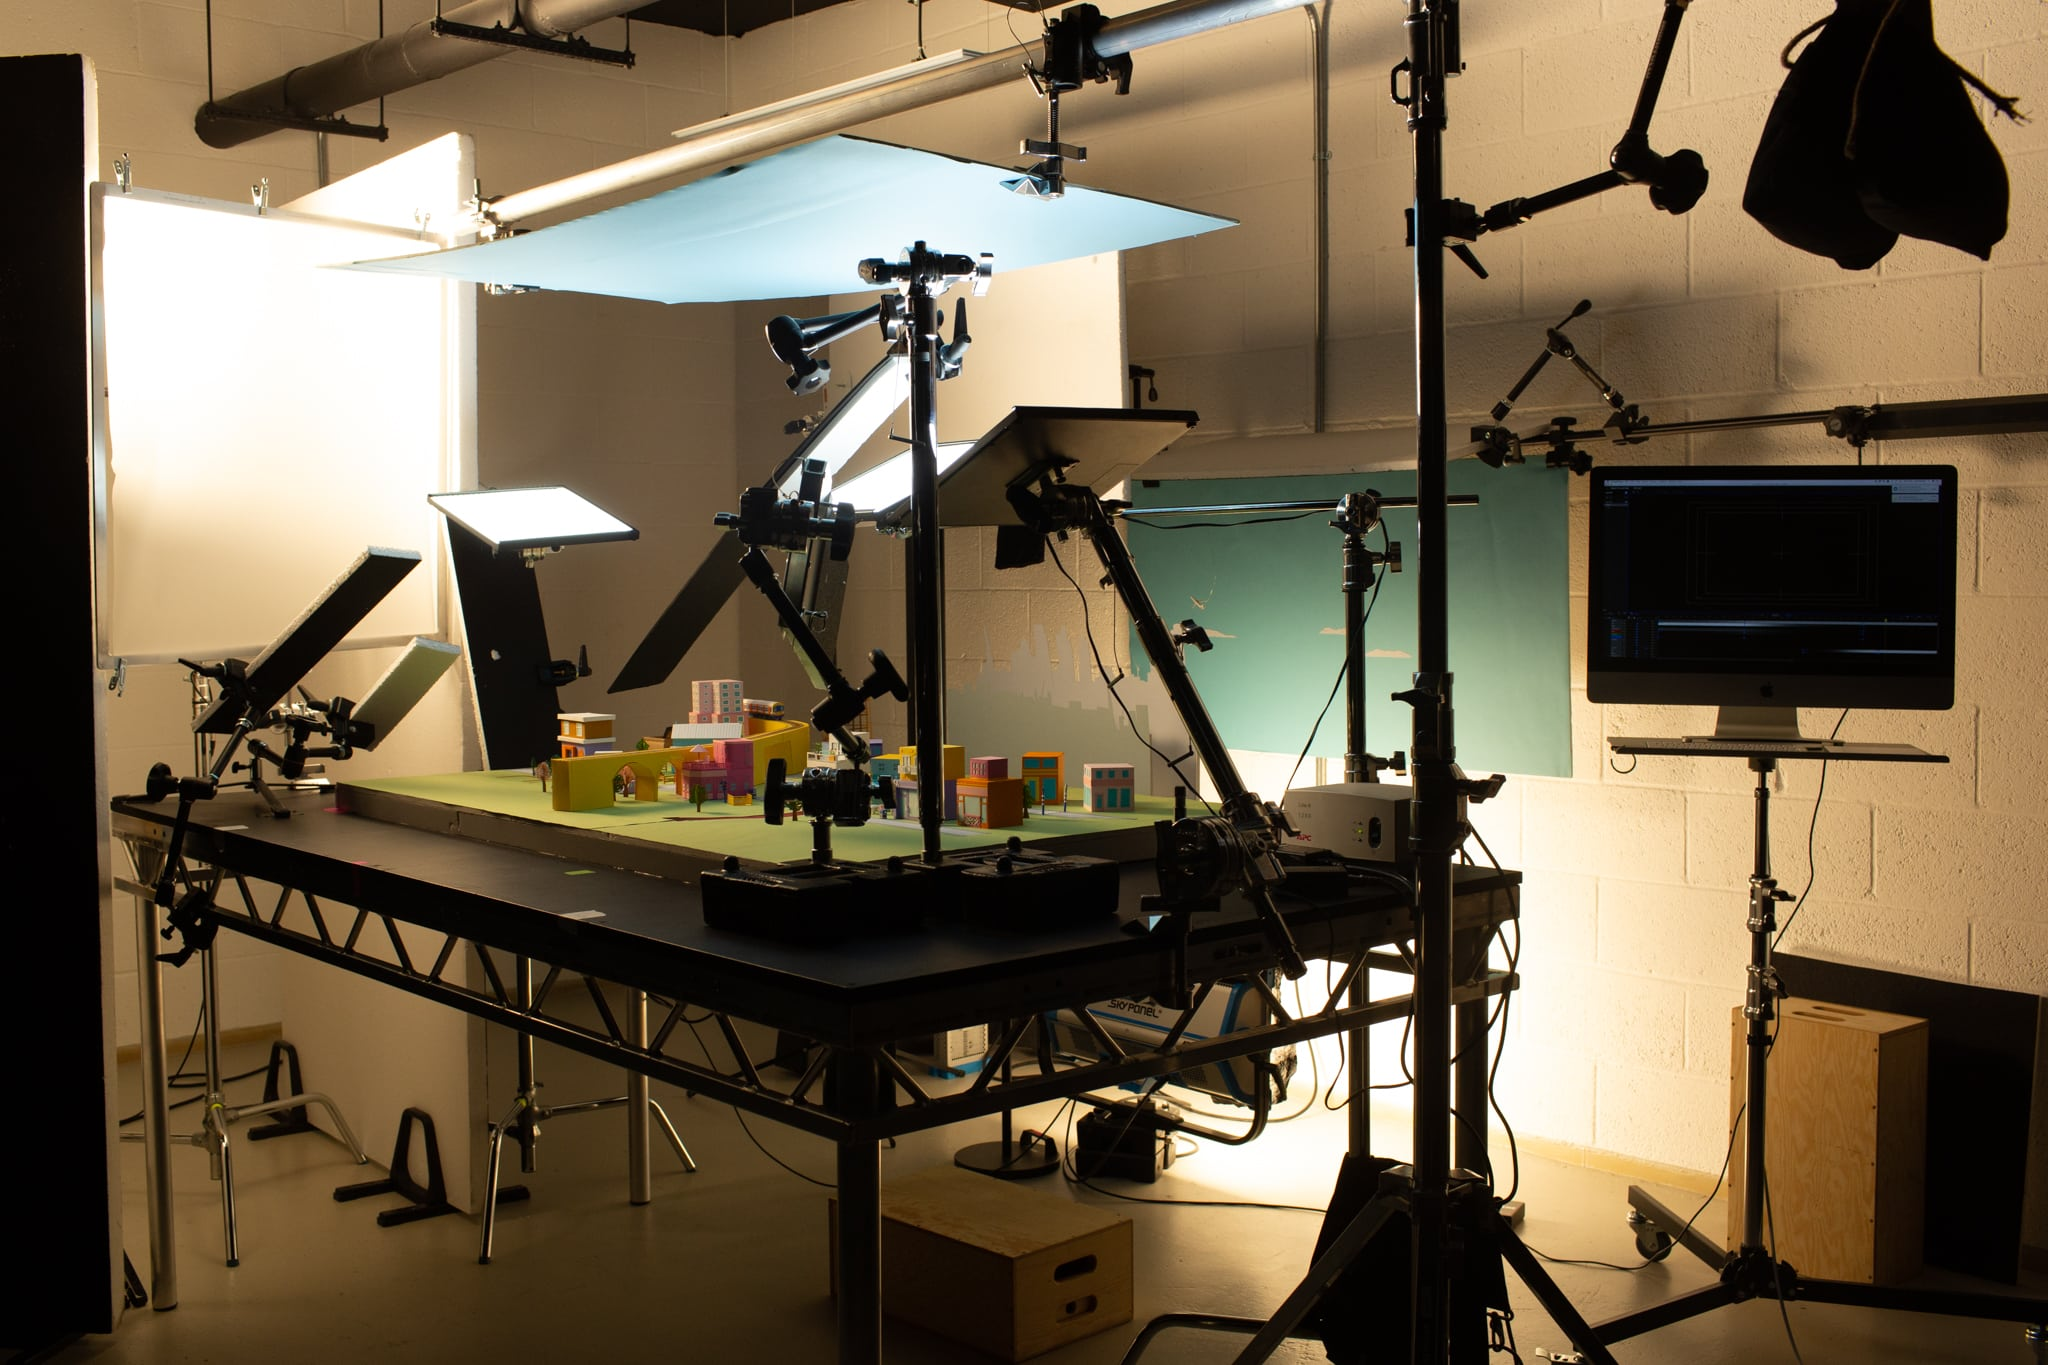 We have moved stop motion set